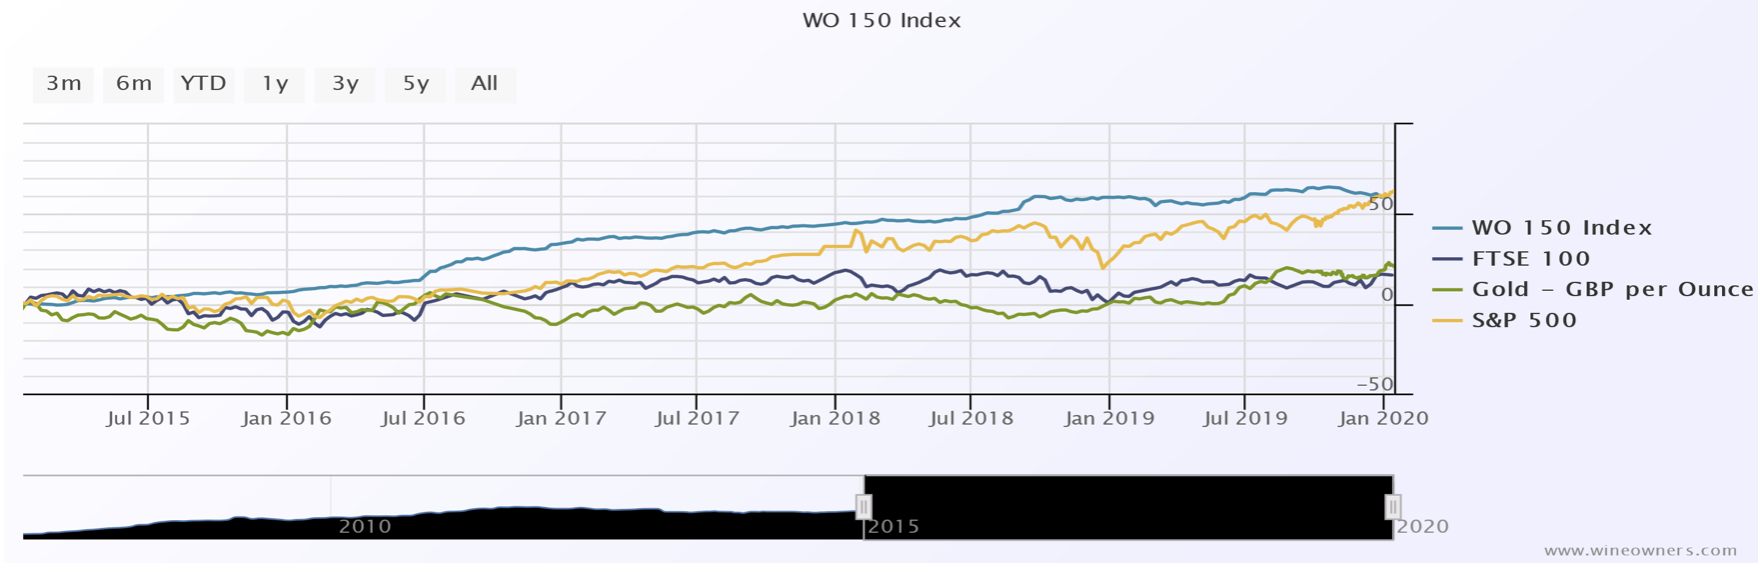 WO 150 Index Wine Owners Investment Report